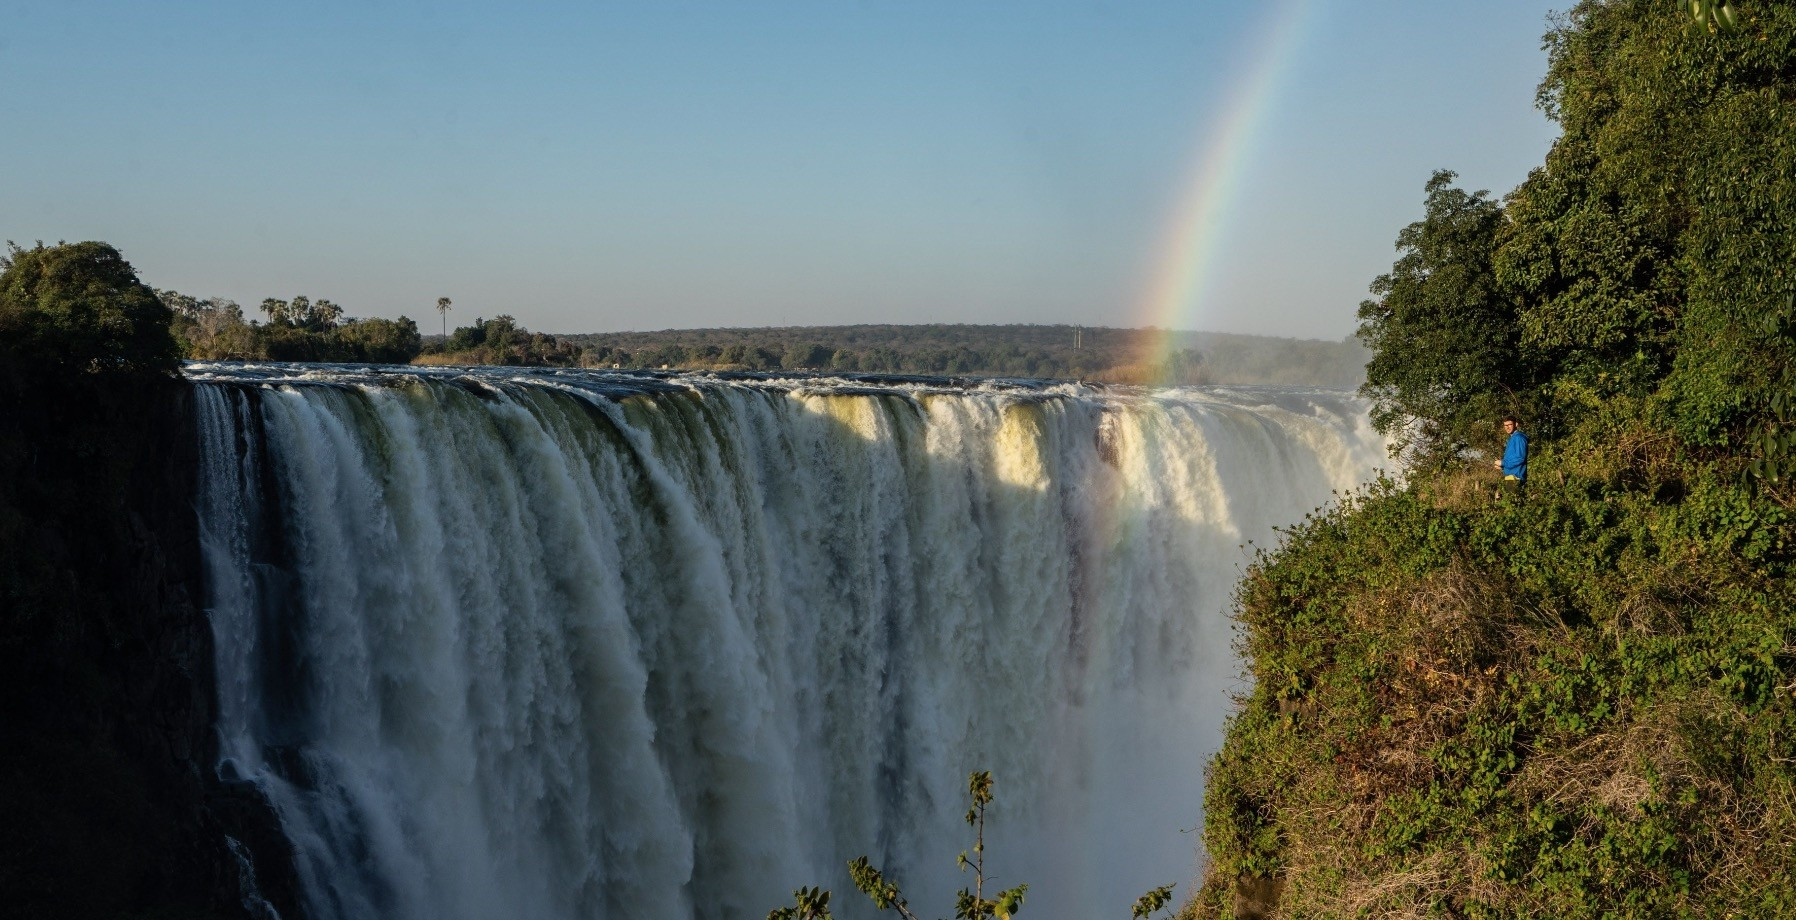 A tourist enjoys a view of the waterfalls from the u2018Devilu2019s Cataractu2019 where water rumbles down from a height of 73 meters at Victoria Falls.